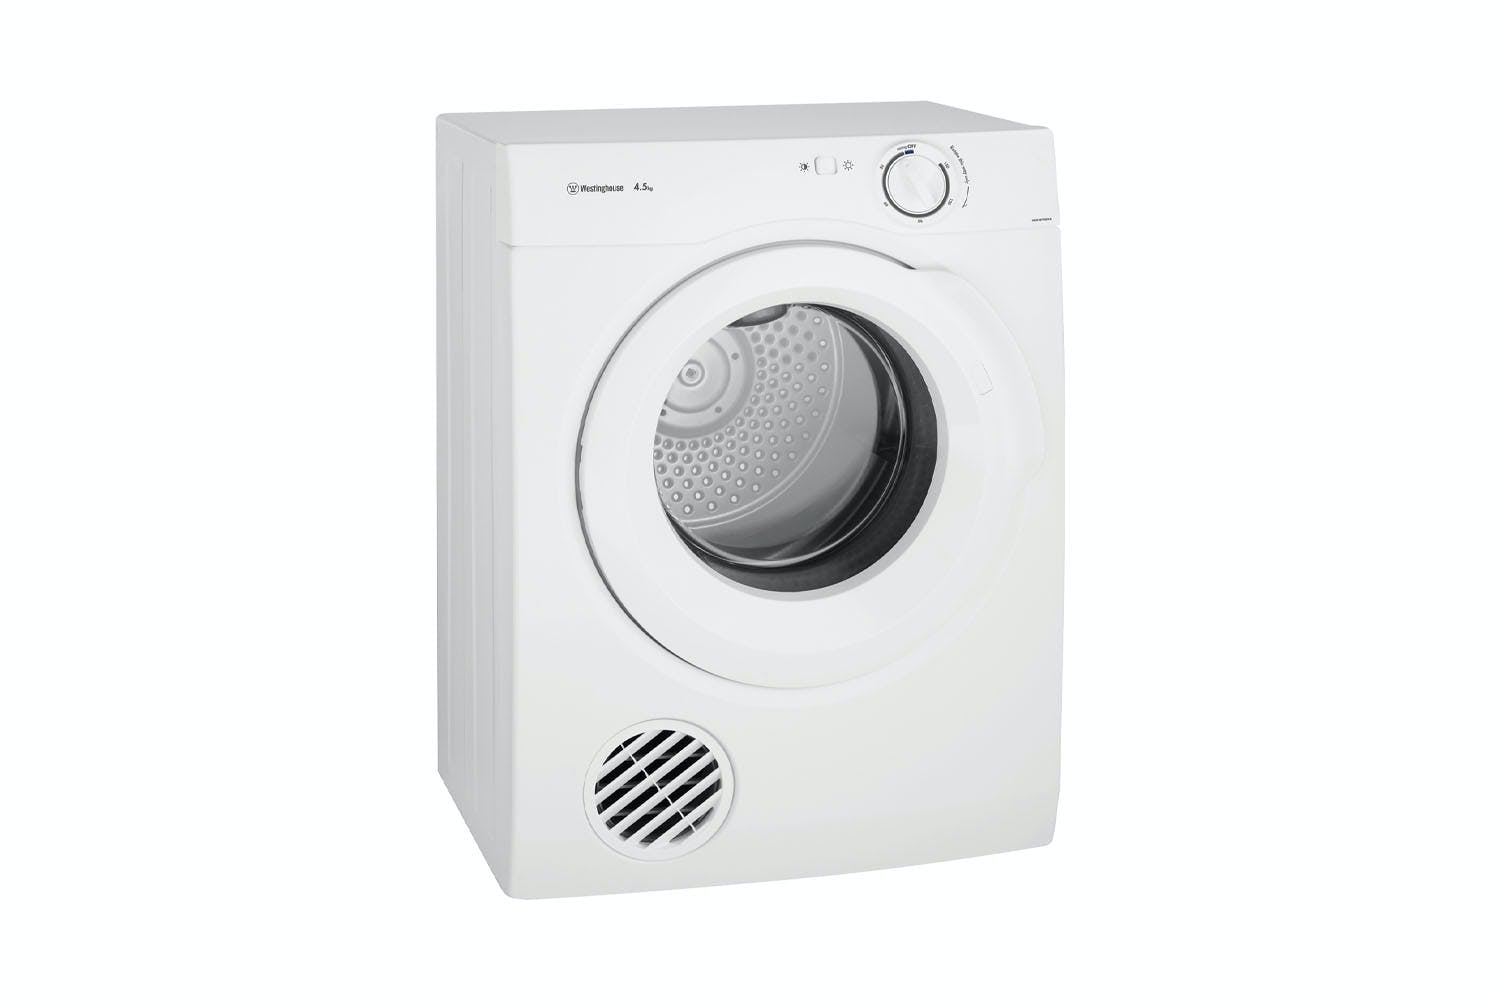 Image of Westinghouse 4.5kg Clothes Dryer